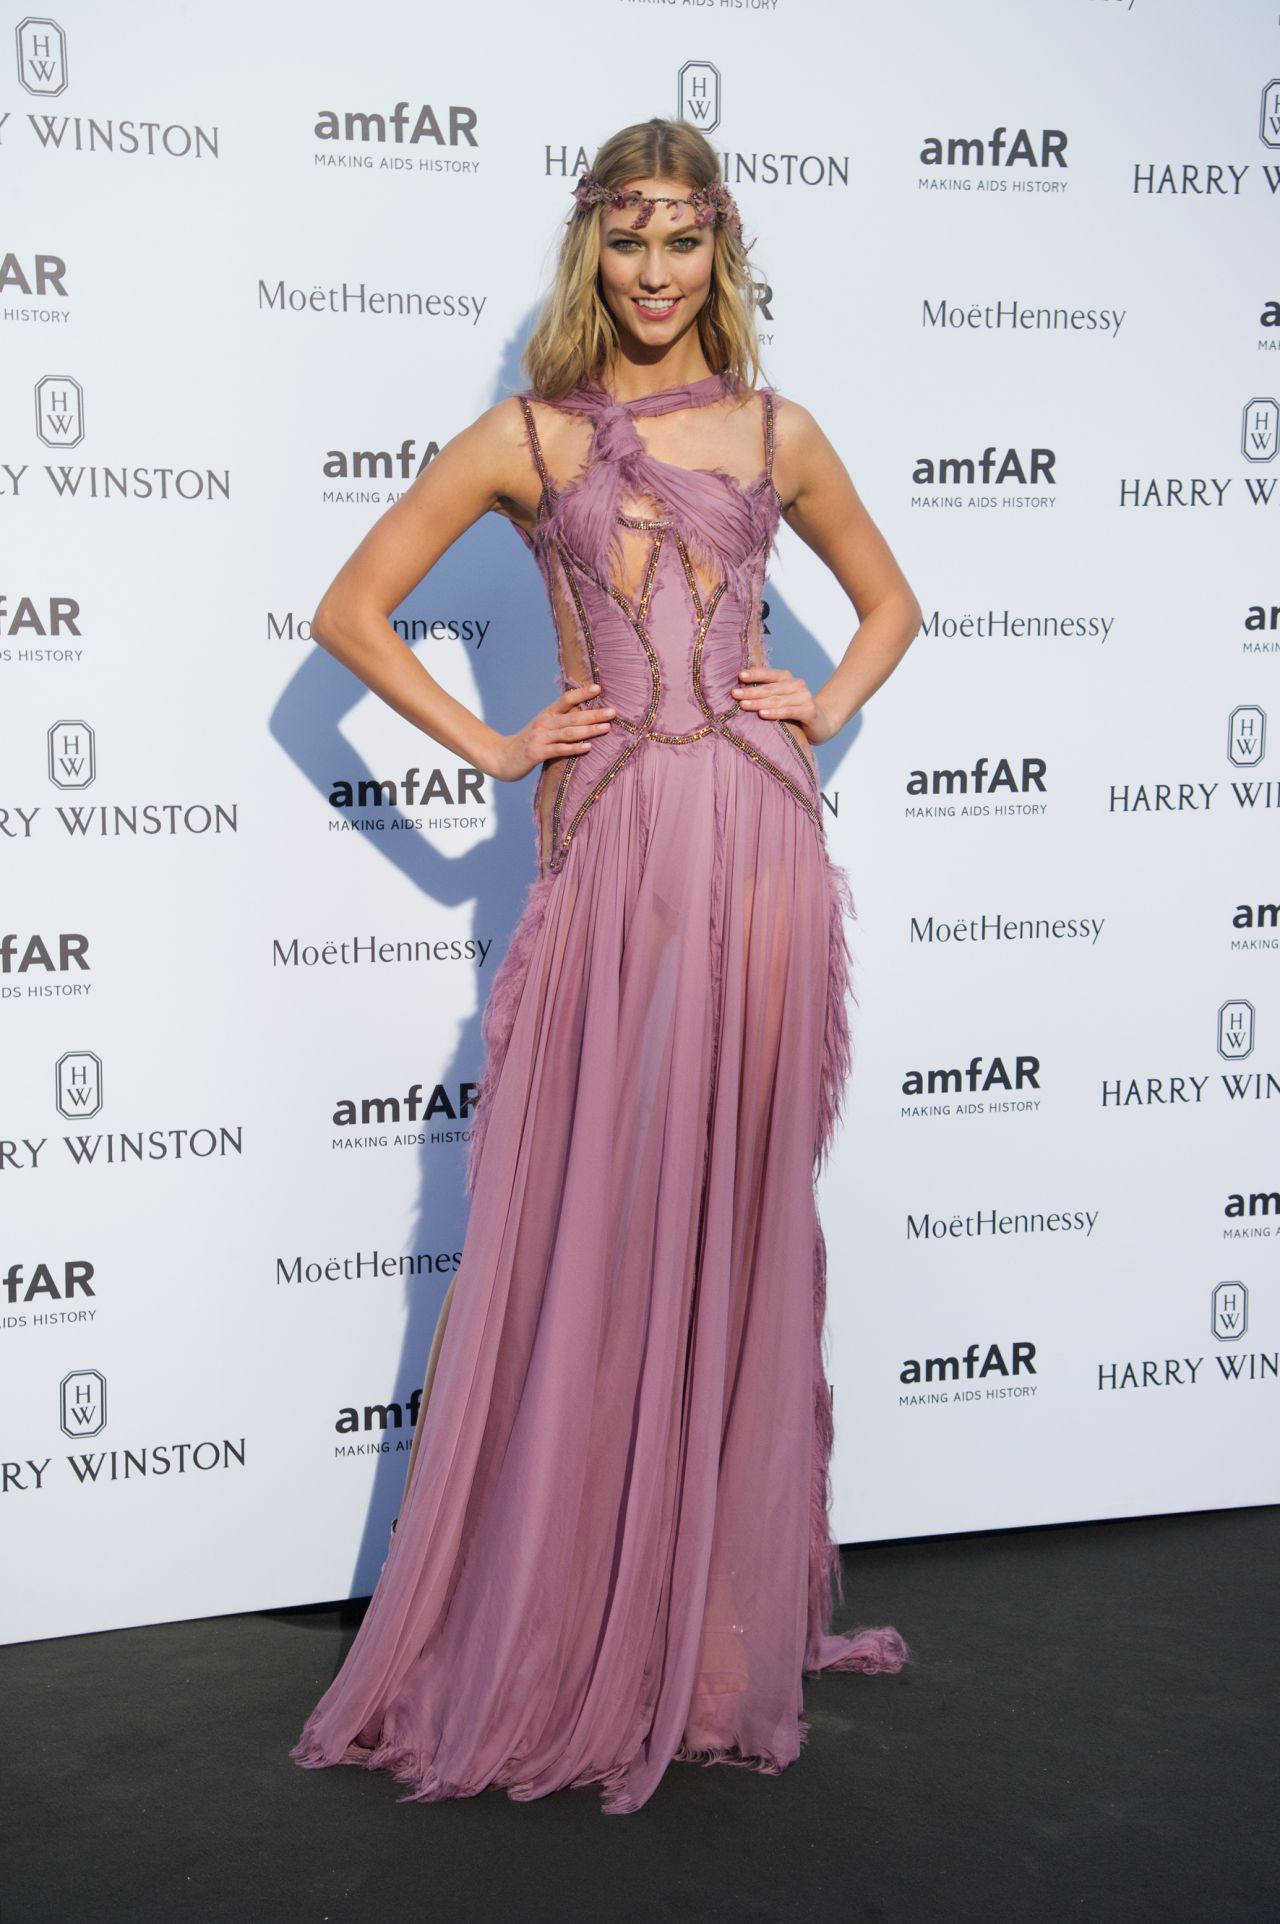 karlie-kloss-on-red-carpet-amfar-dinner-in-paris-july-2015_6